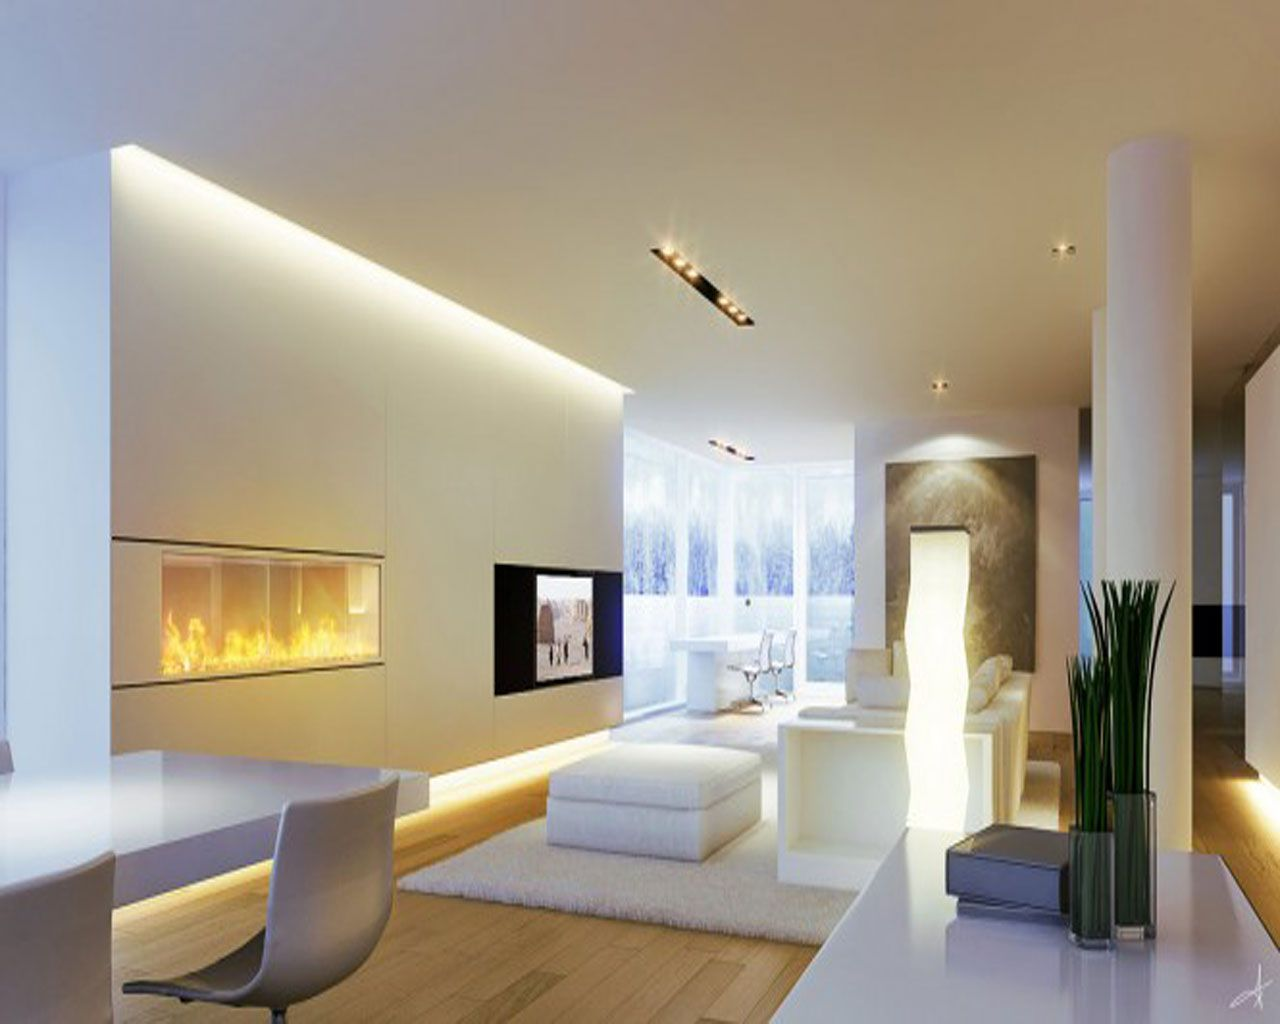 Living Design Room Lighting Image Living Room Ideas Design 2013 Pictures Gallery